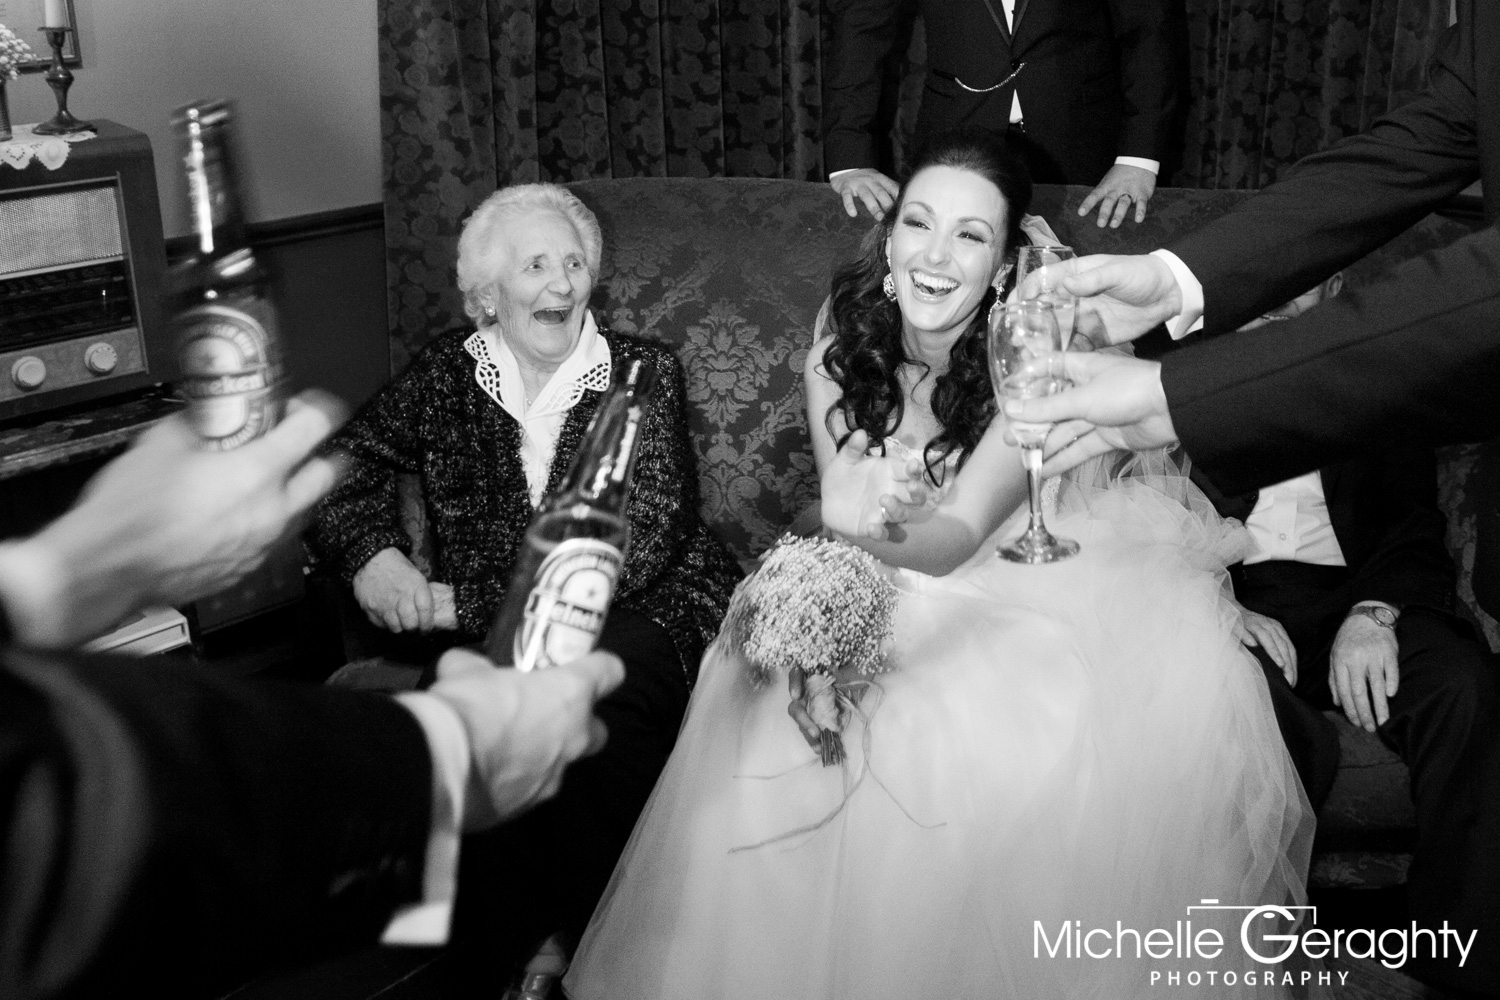 1713-Michelle Geraghty Photography_Mary & Connal-IMG_4137.jpg